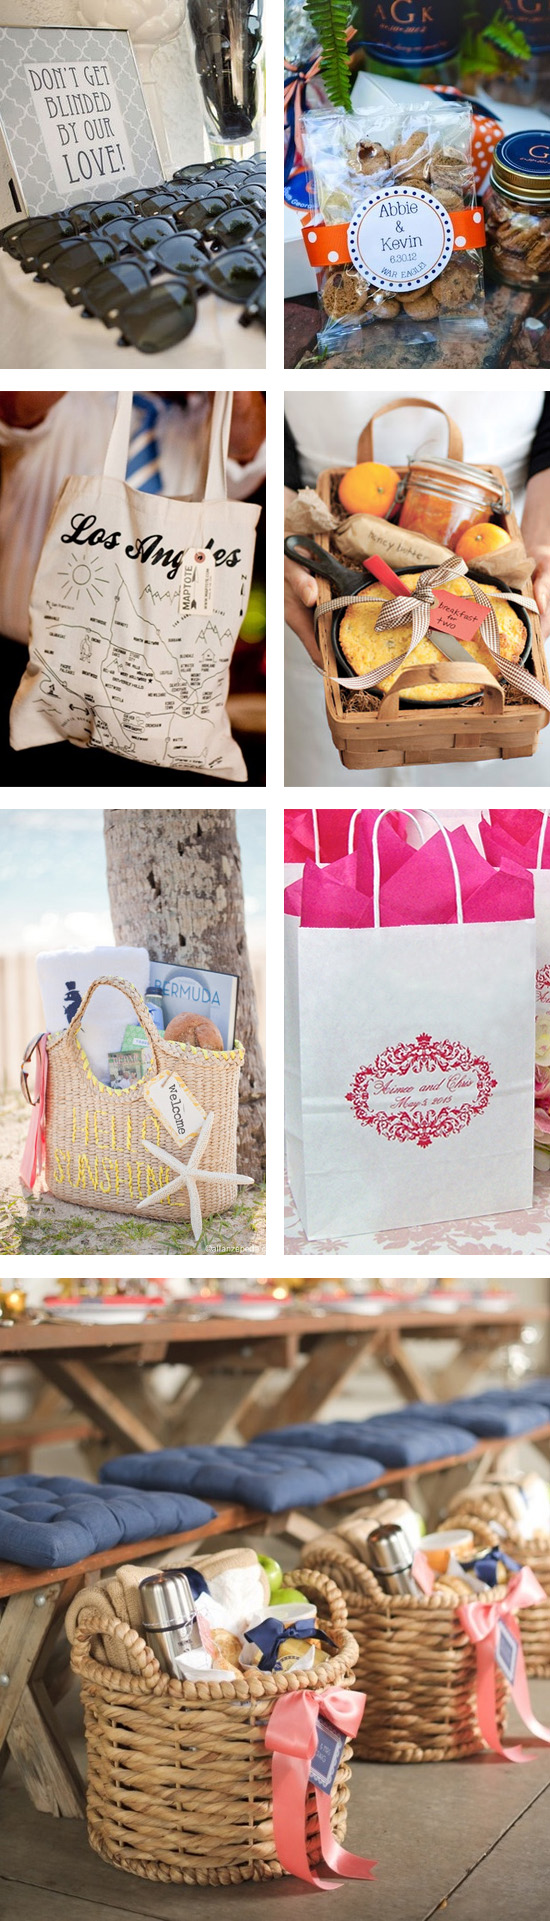 Wedding Gift Bag Ideas Suggestions : wonderful wedding guest bags ideas 23 looks efficient design